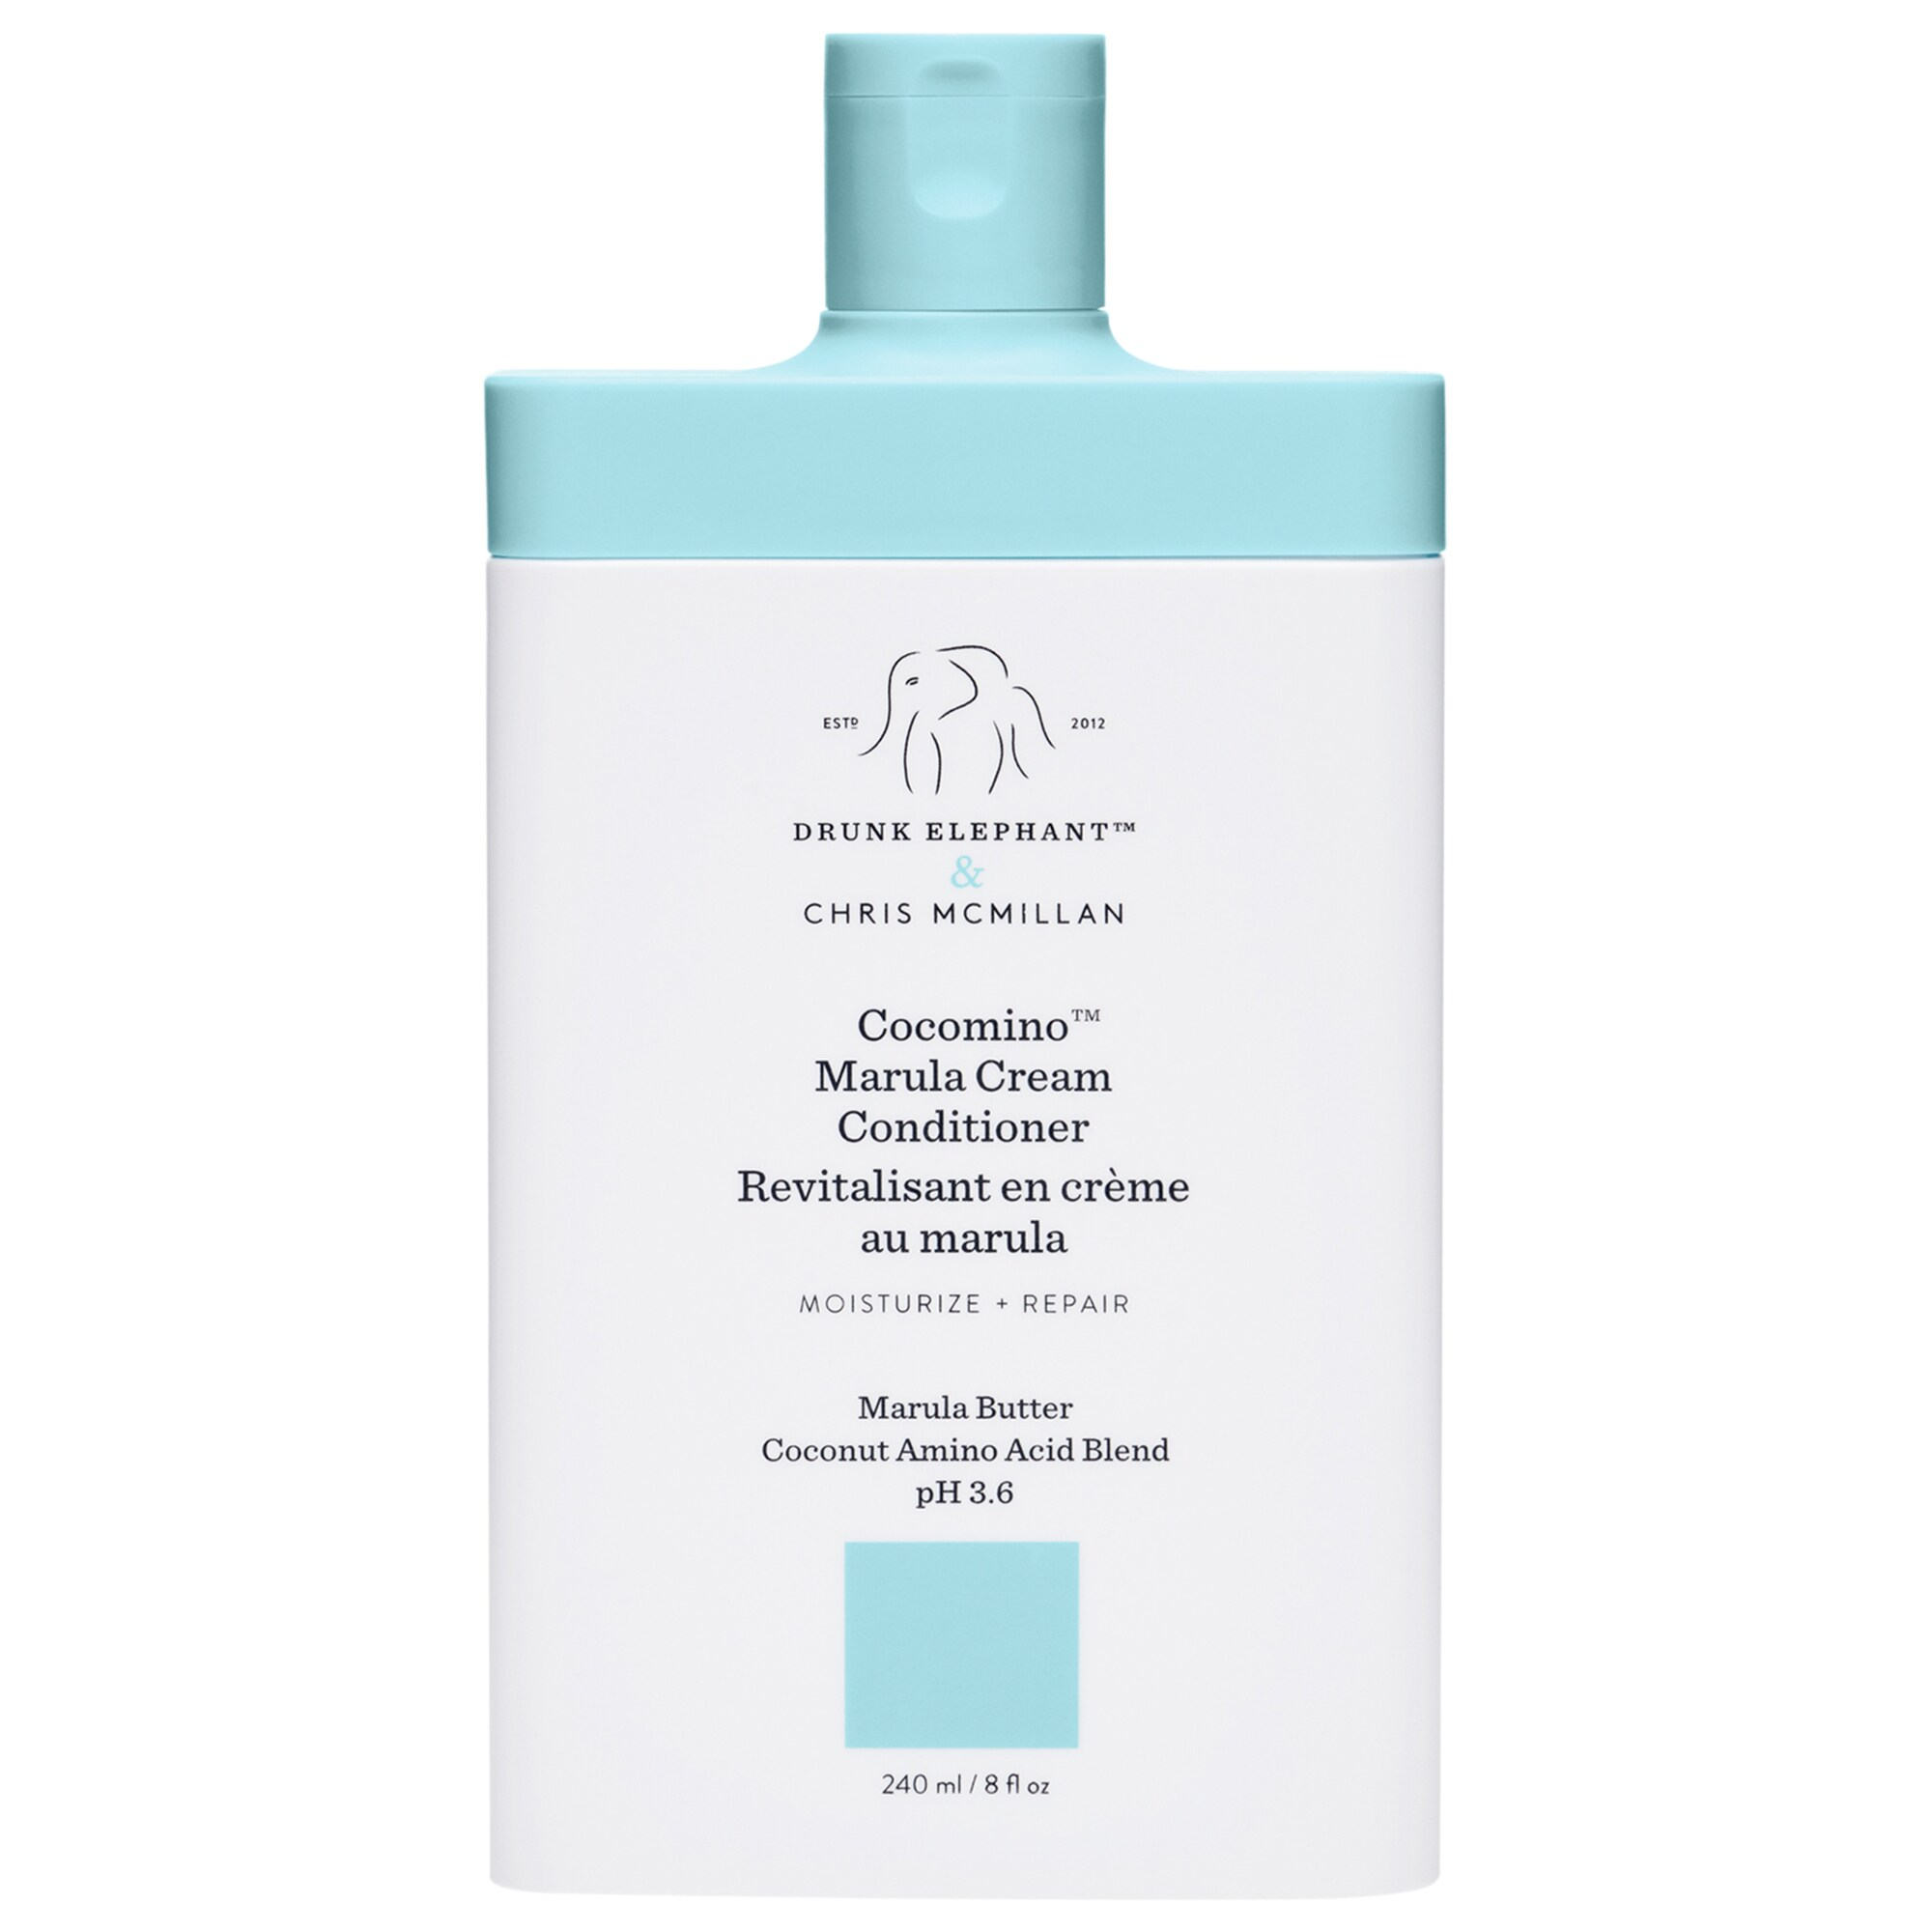 Drunk Elephant - Cocomino™ Marula Cream Conditioner